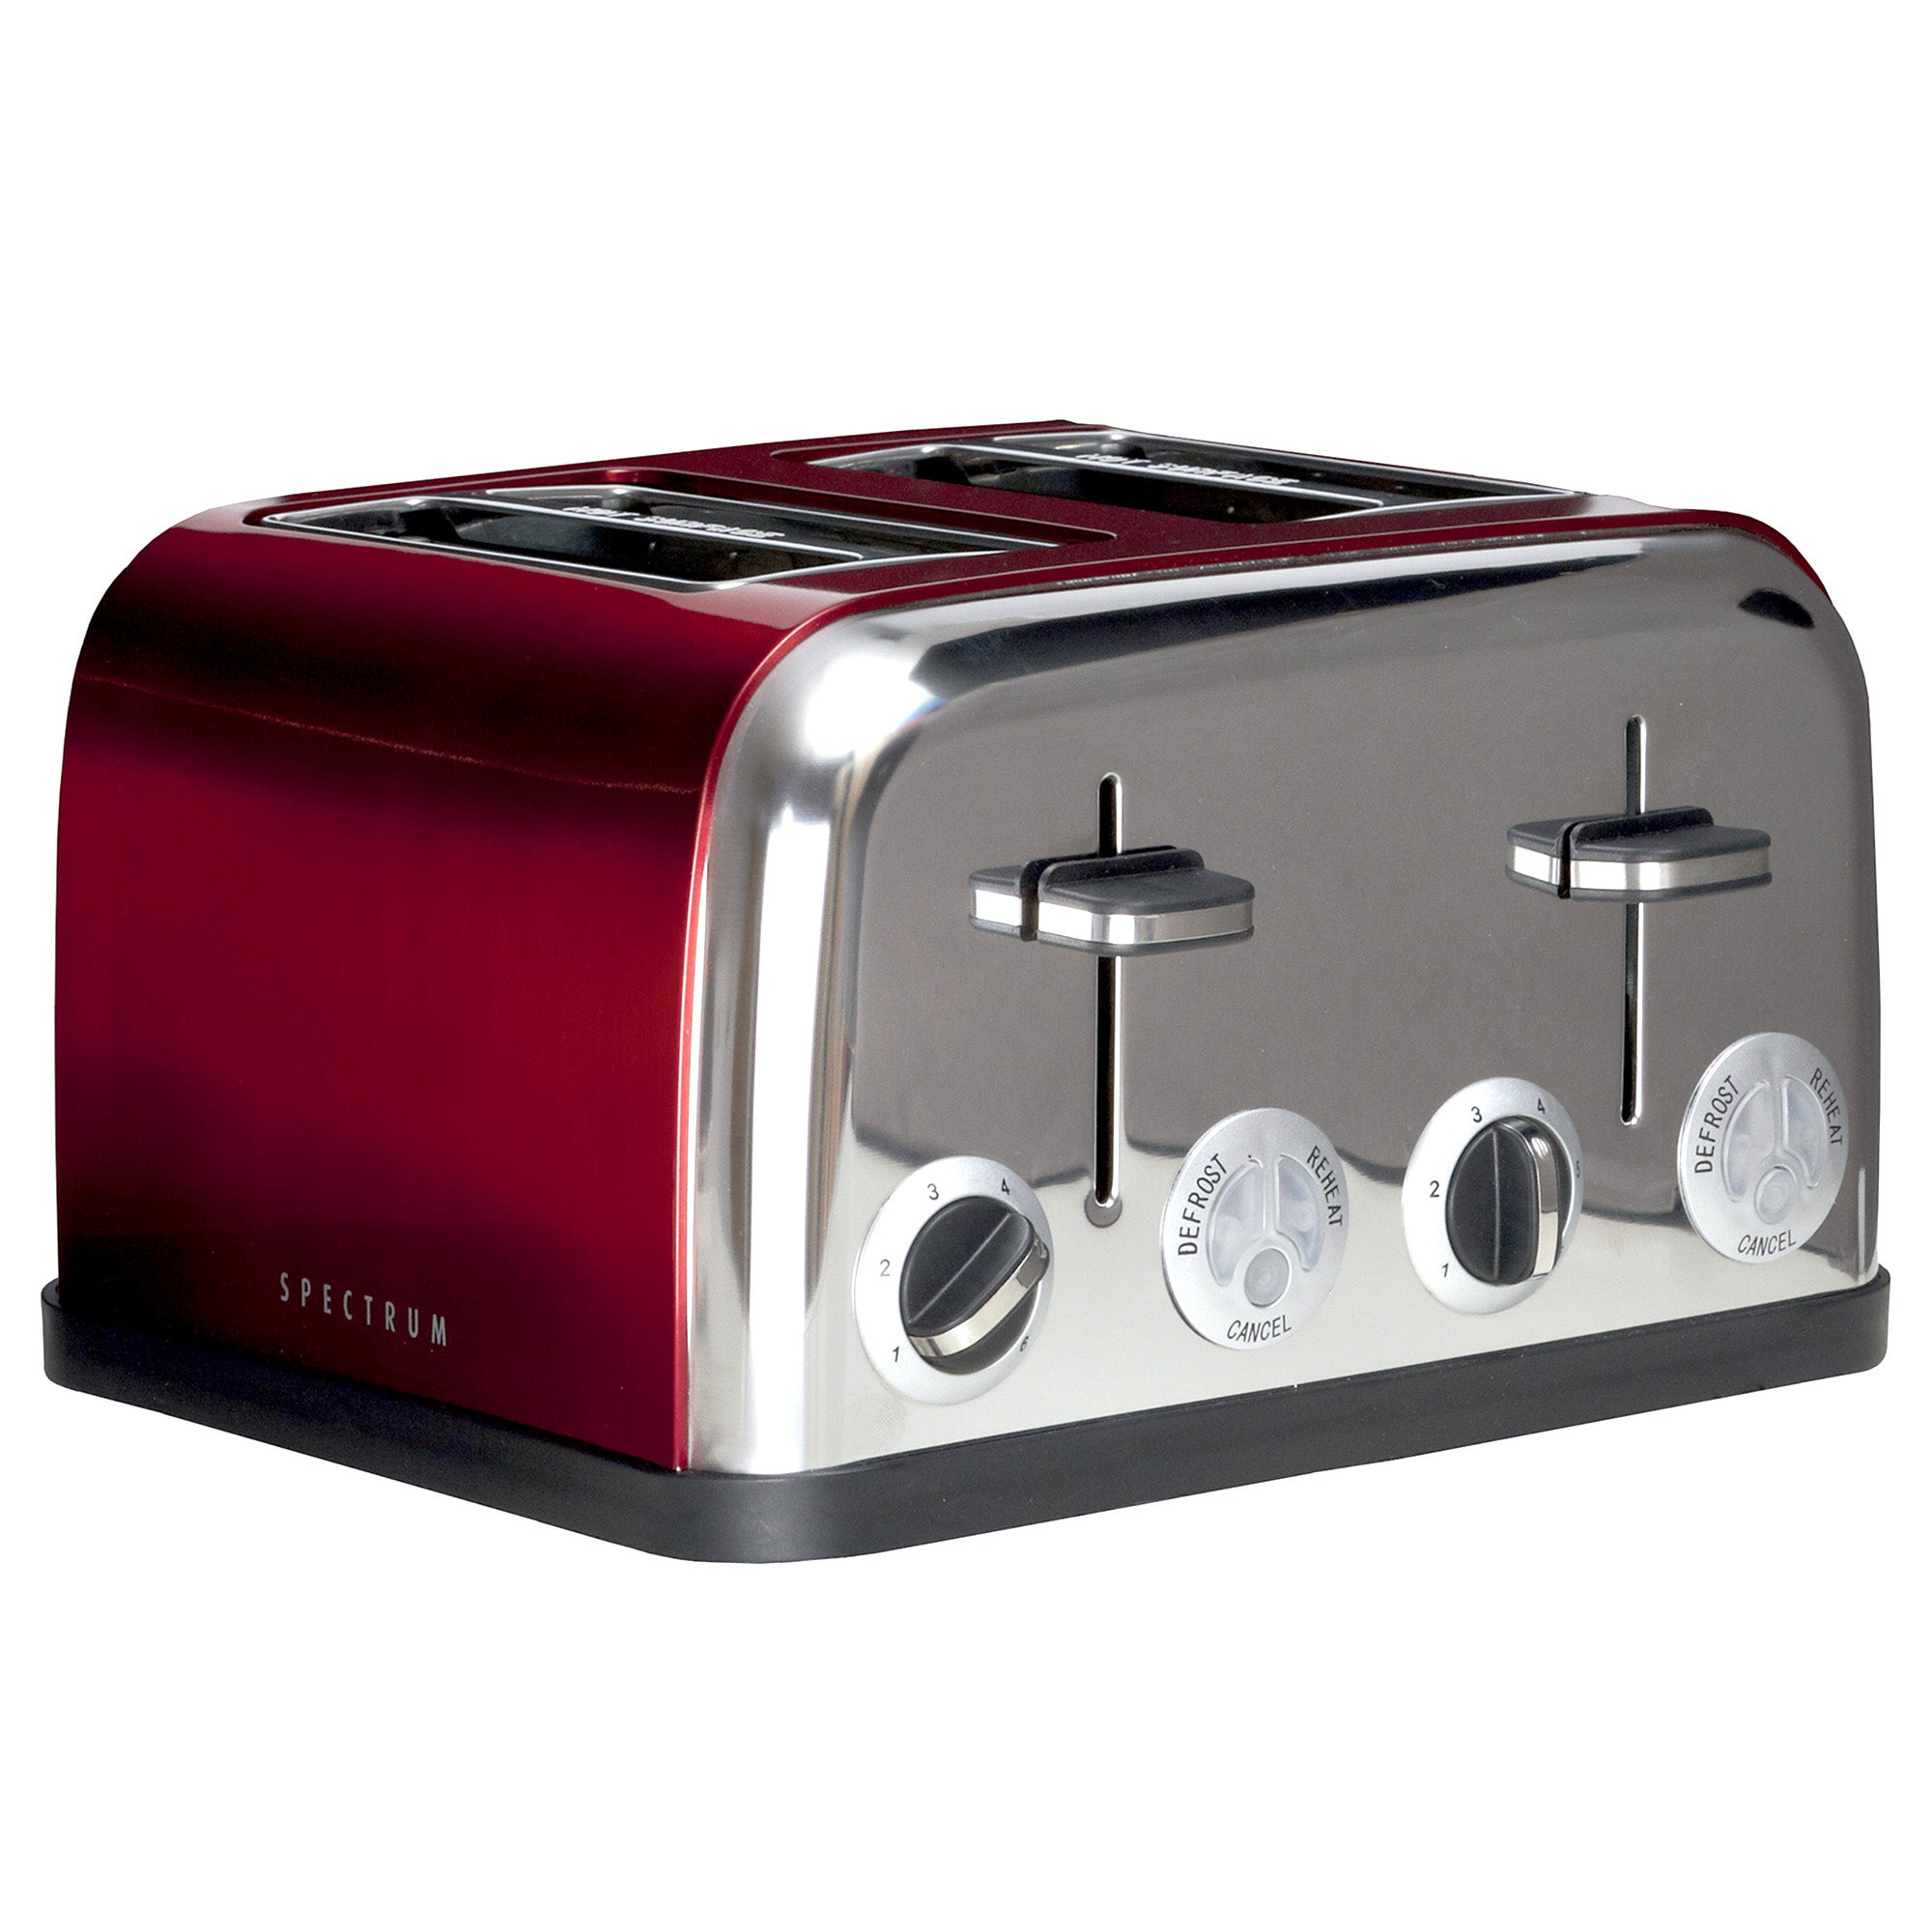 Red Spectrum 4 Slice Toaster